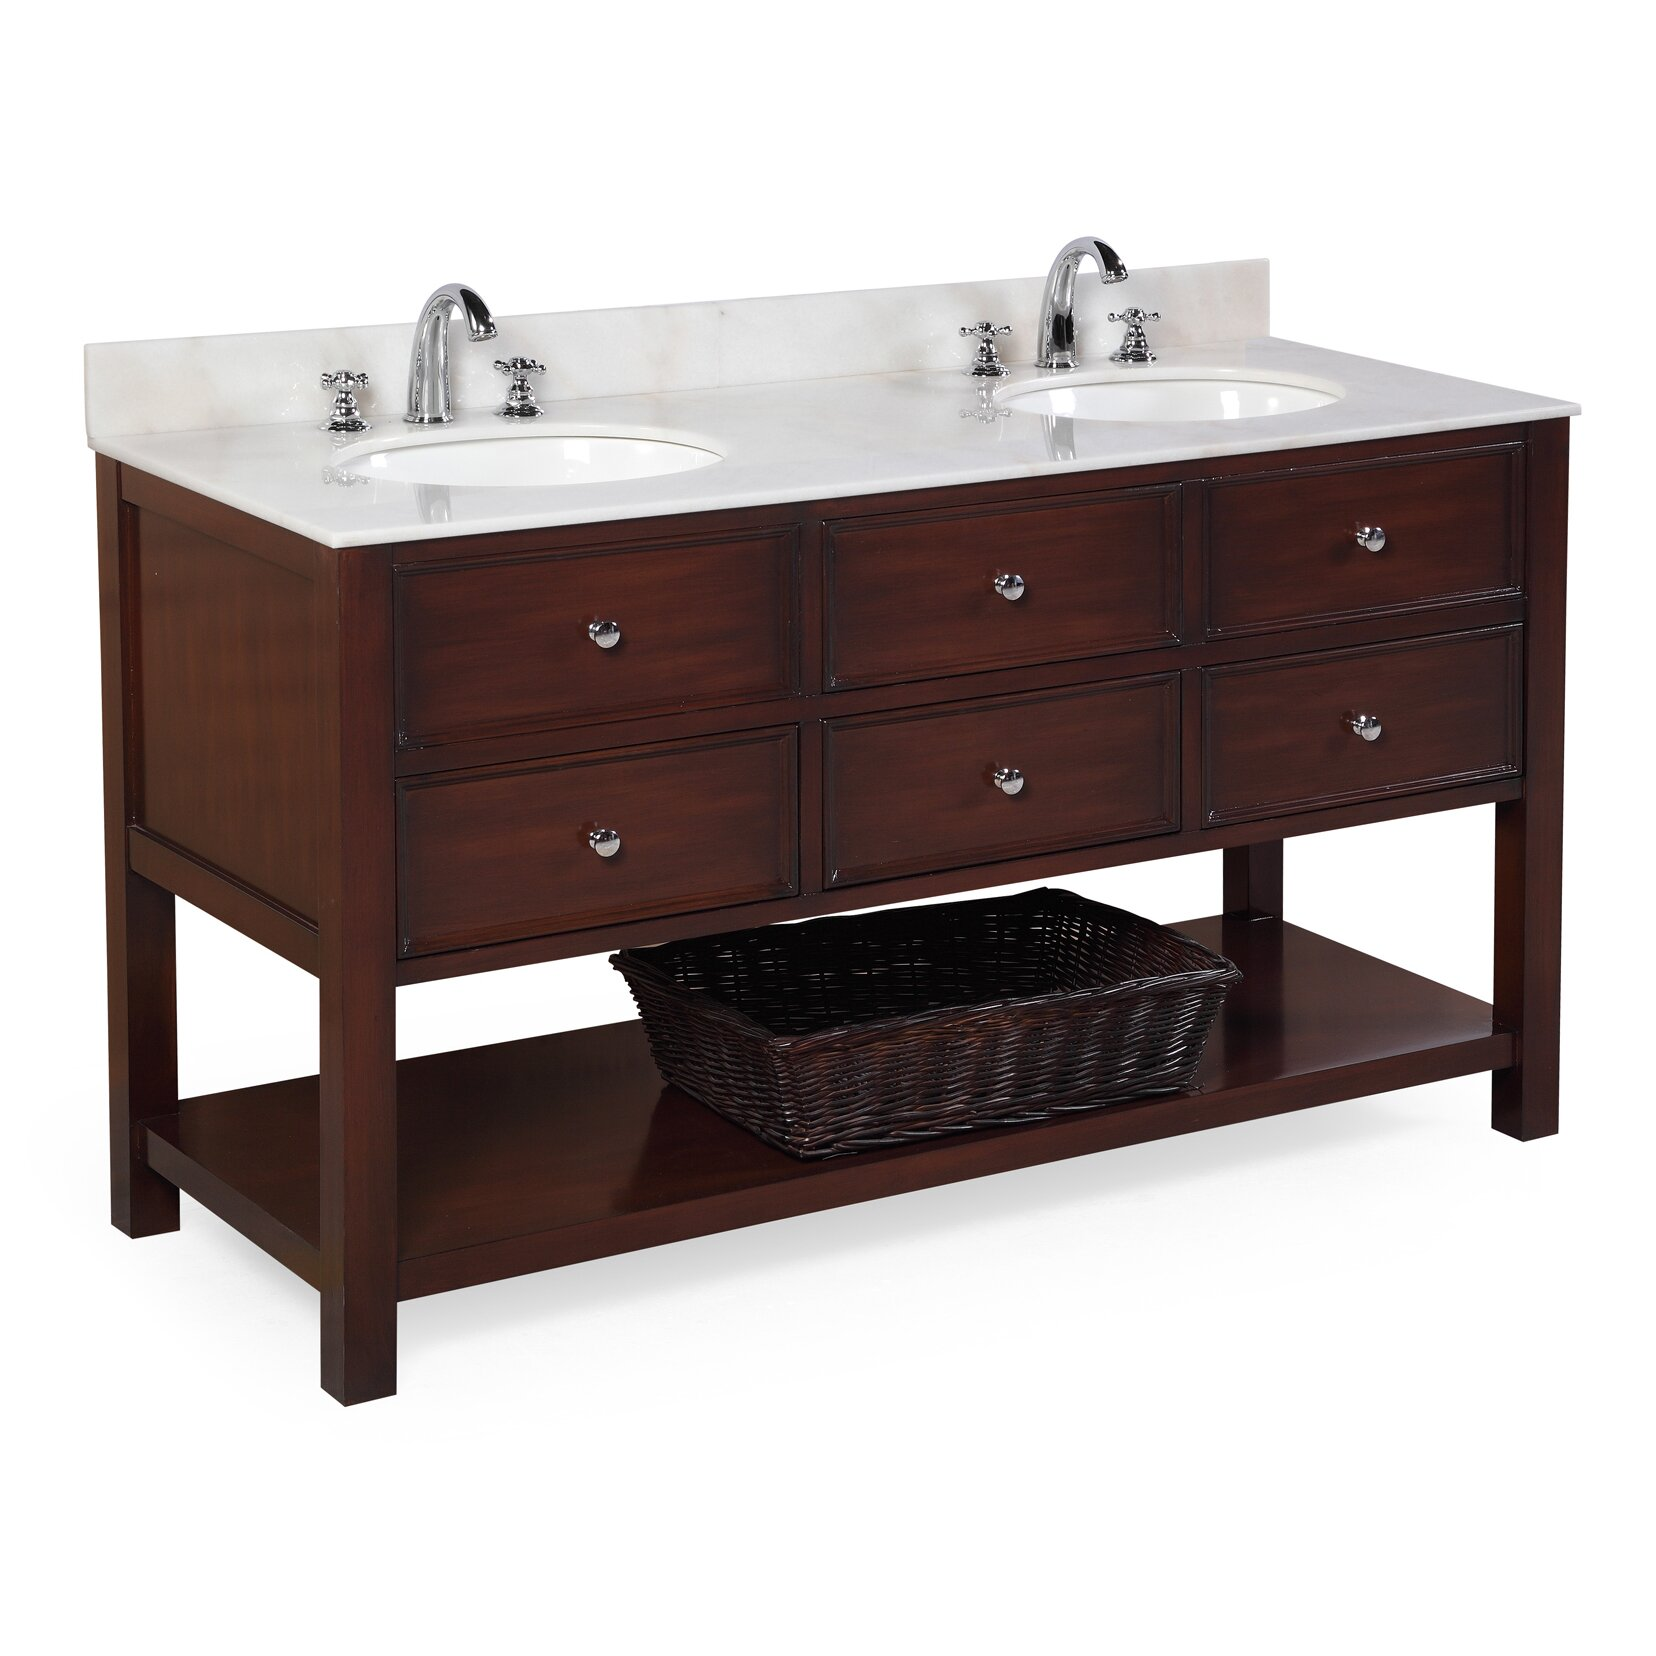 Kbc new yorker 60 double bathroom vanity set reviews for Bath and vanity set